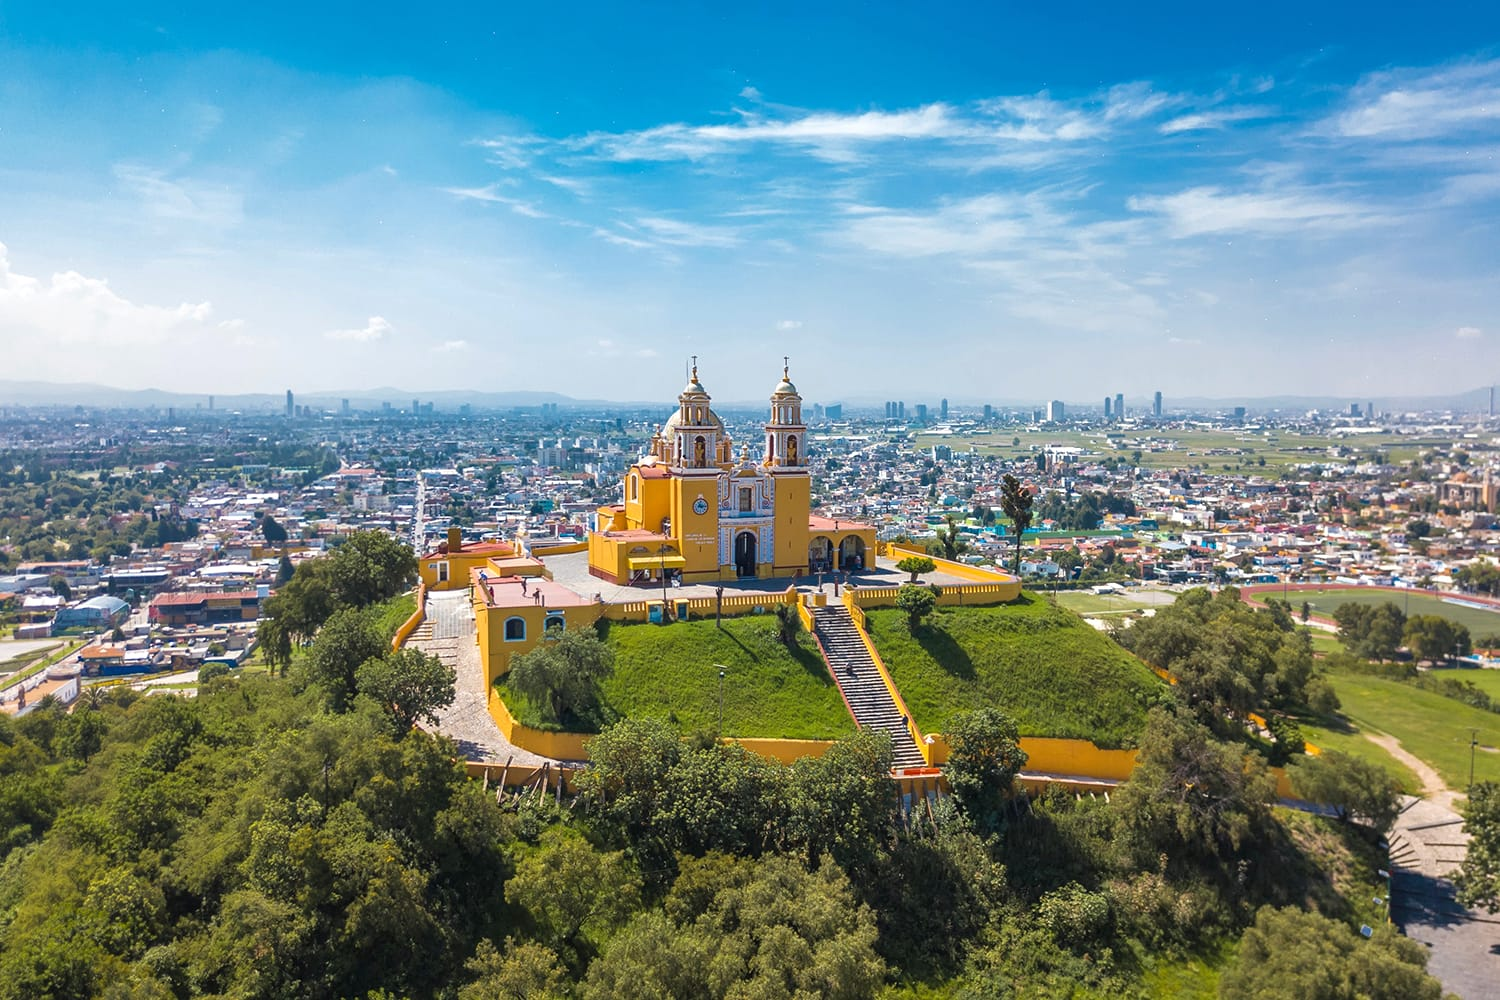 Aerial view of Church of Our Lady of Remedies in Cholula, Mexico